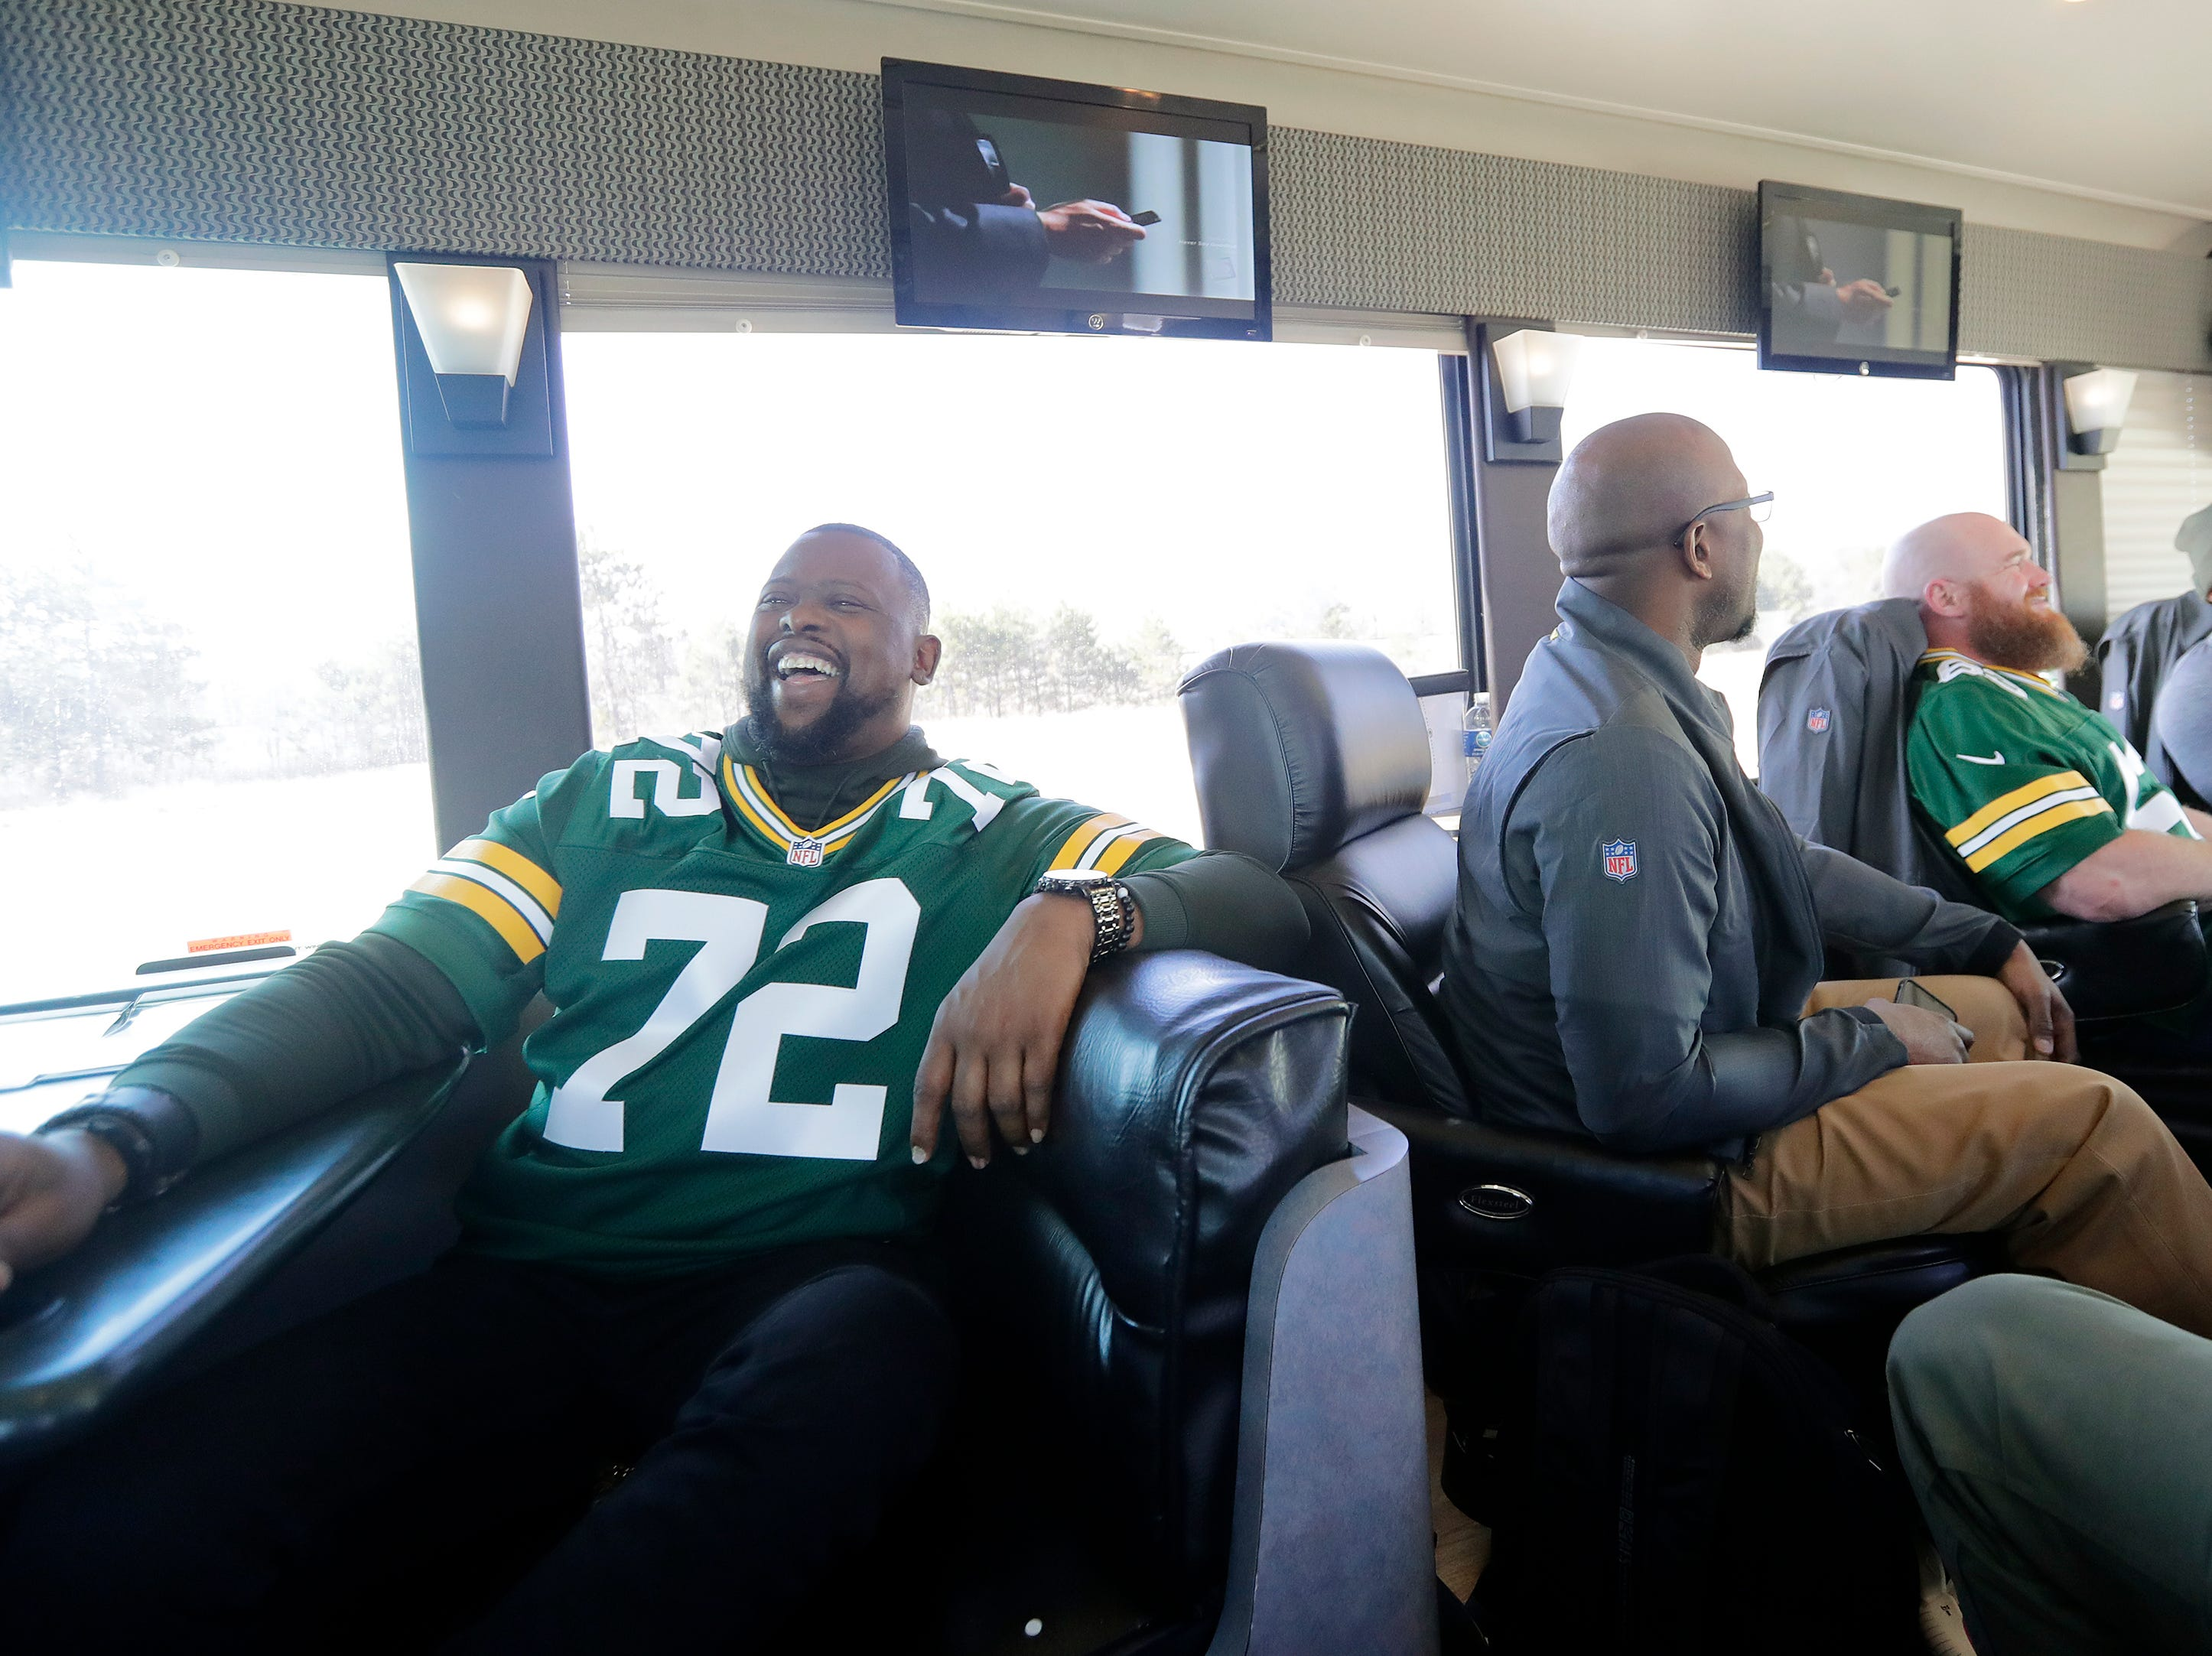 Former Green Bay Packers player Earl Dotson jokes in between stops on the Packers Tailgate Tour on Tuesday, April 9, 2019 in Clintonville, Wis.